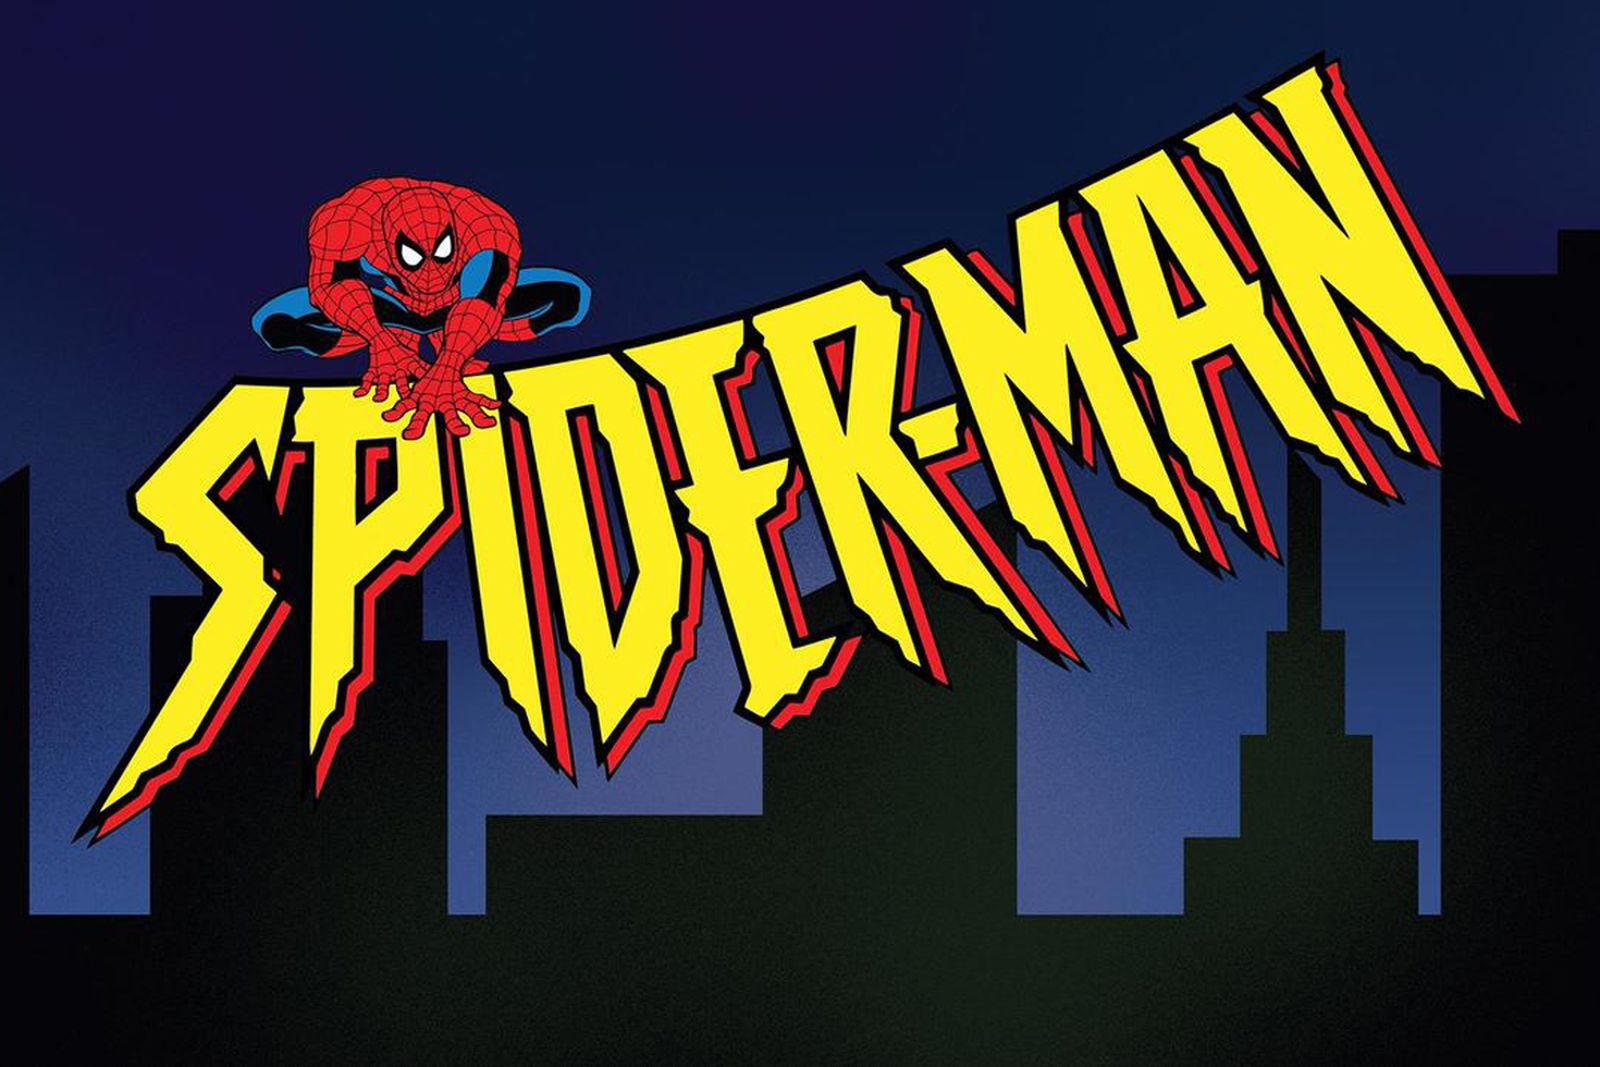 disney plus marvel spideman spiderman